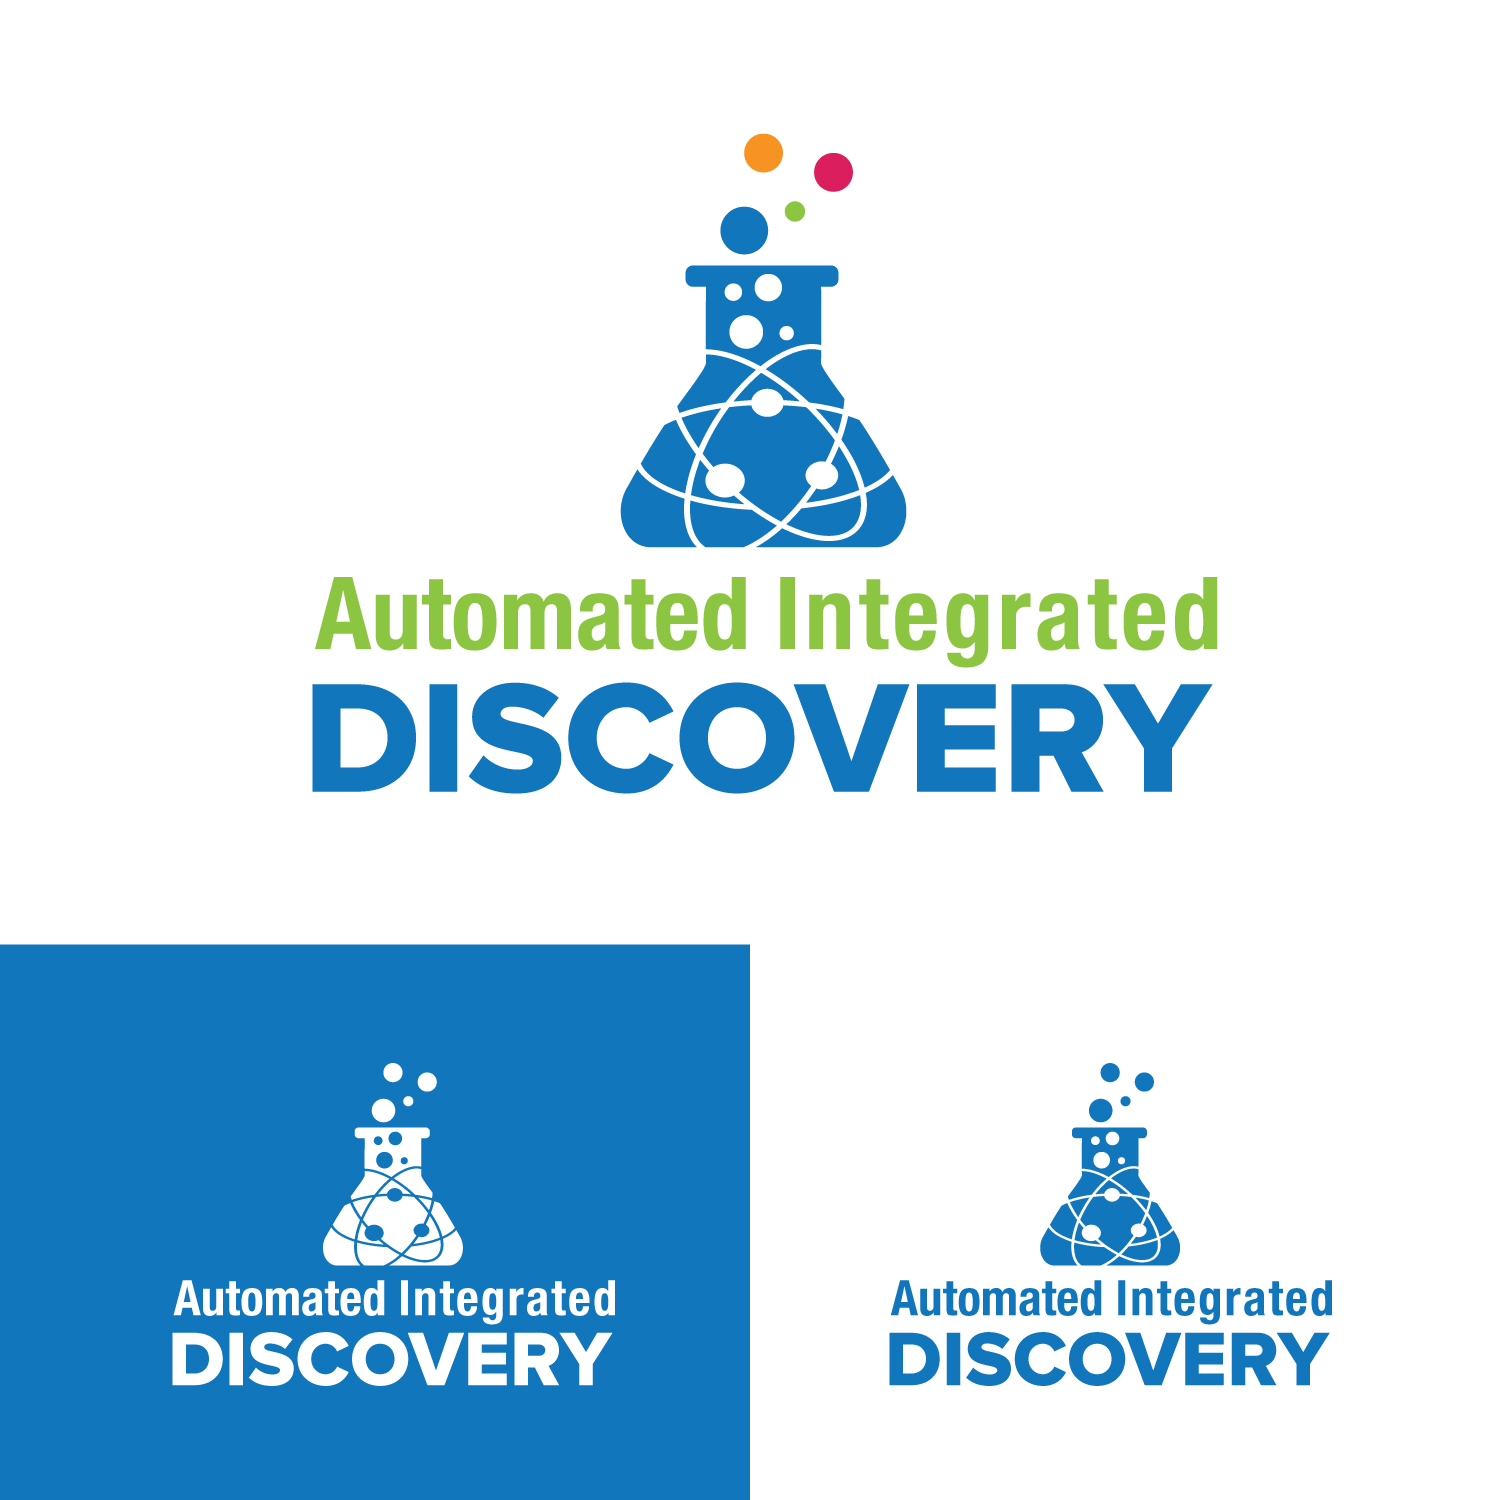 Logo Design by Bac Huu - Entry No. 34 in the Logo Design Contest Automated Integrated Discovery  Logo Design.